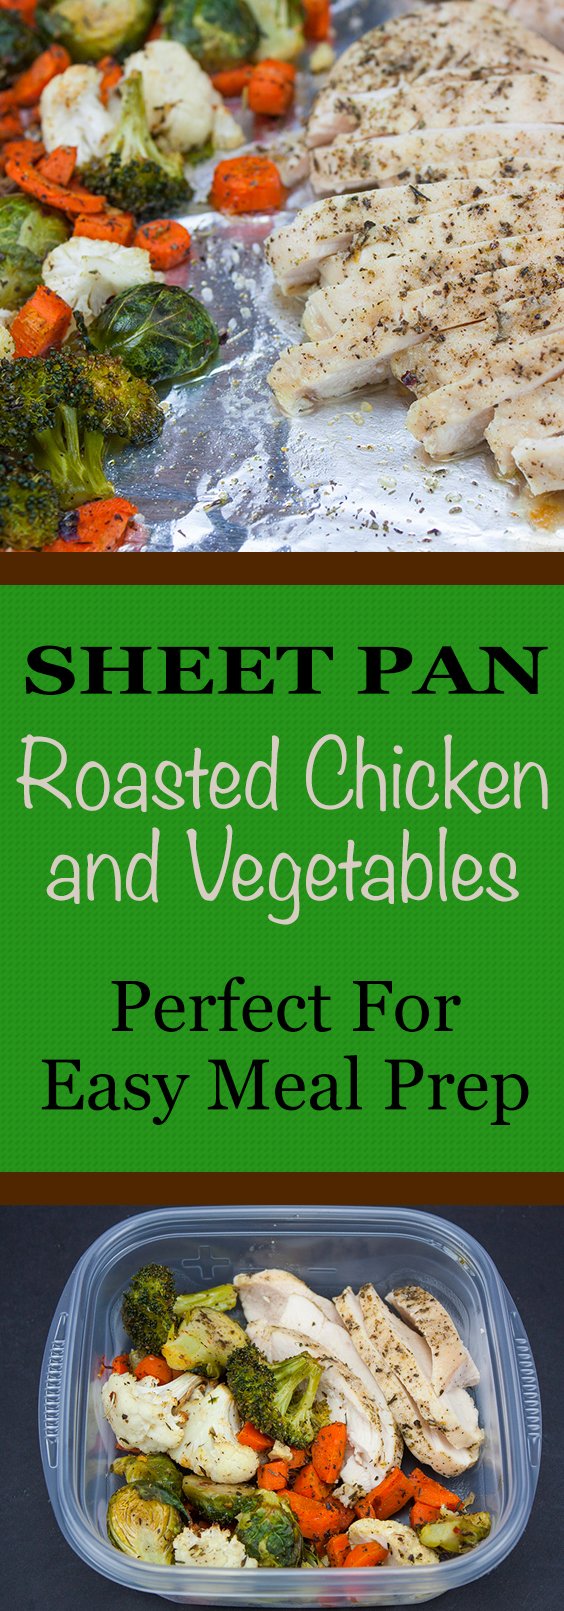 Sheet Pan Roasted Chicken and Vegetables - Easy cleanup, delicious flavor, and perfect for meal prep or dinner in a jiffy.